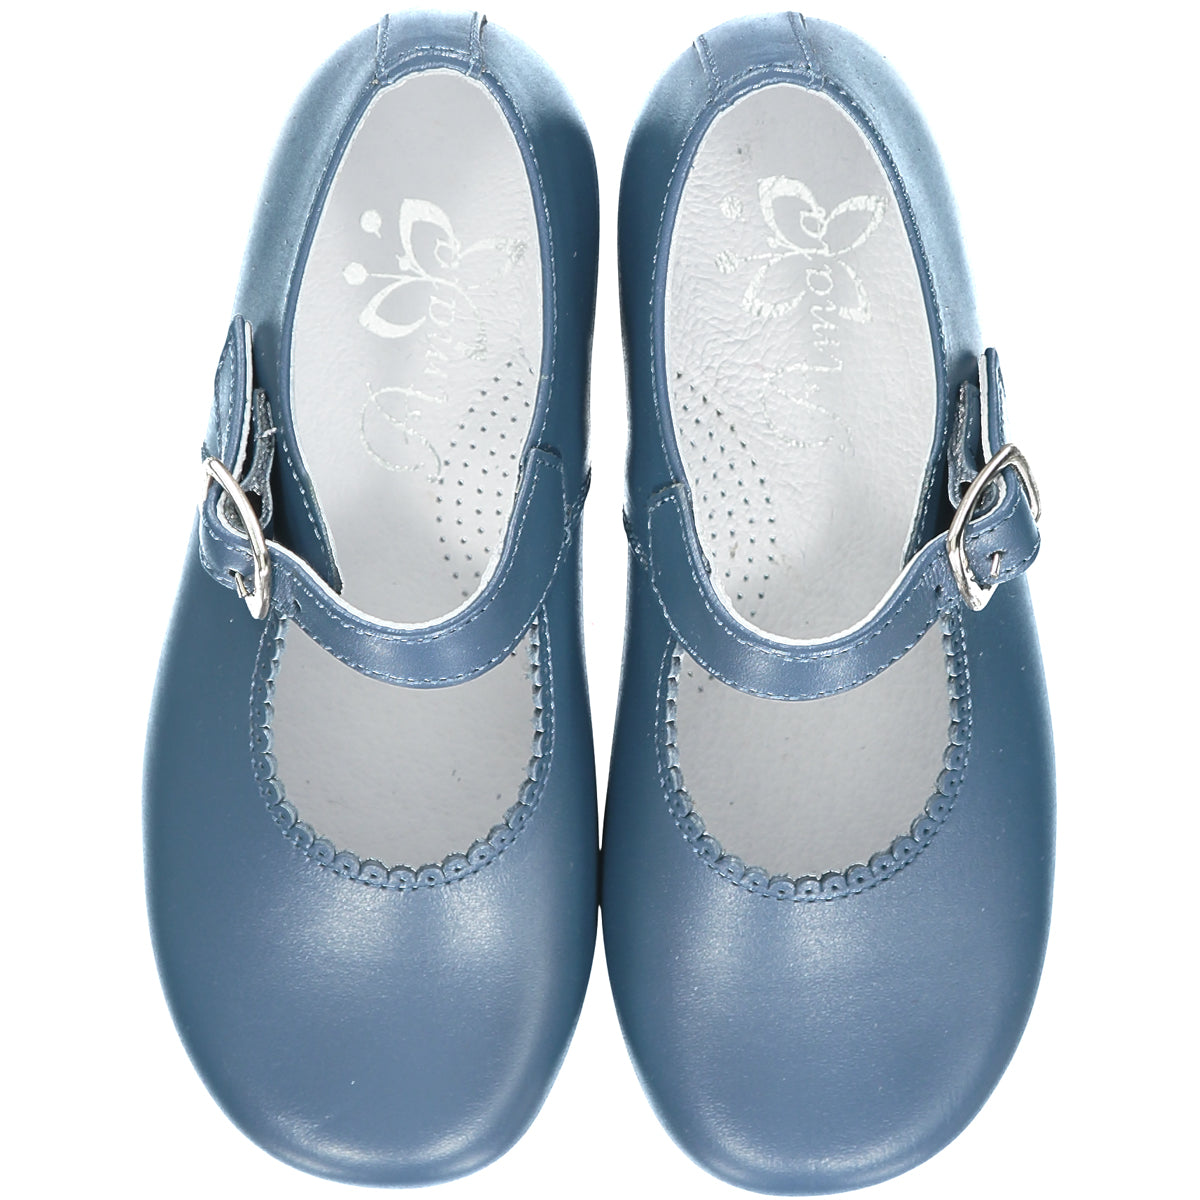 Blue Girl Mary Jane Shoes